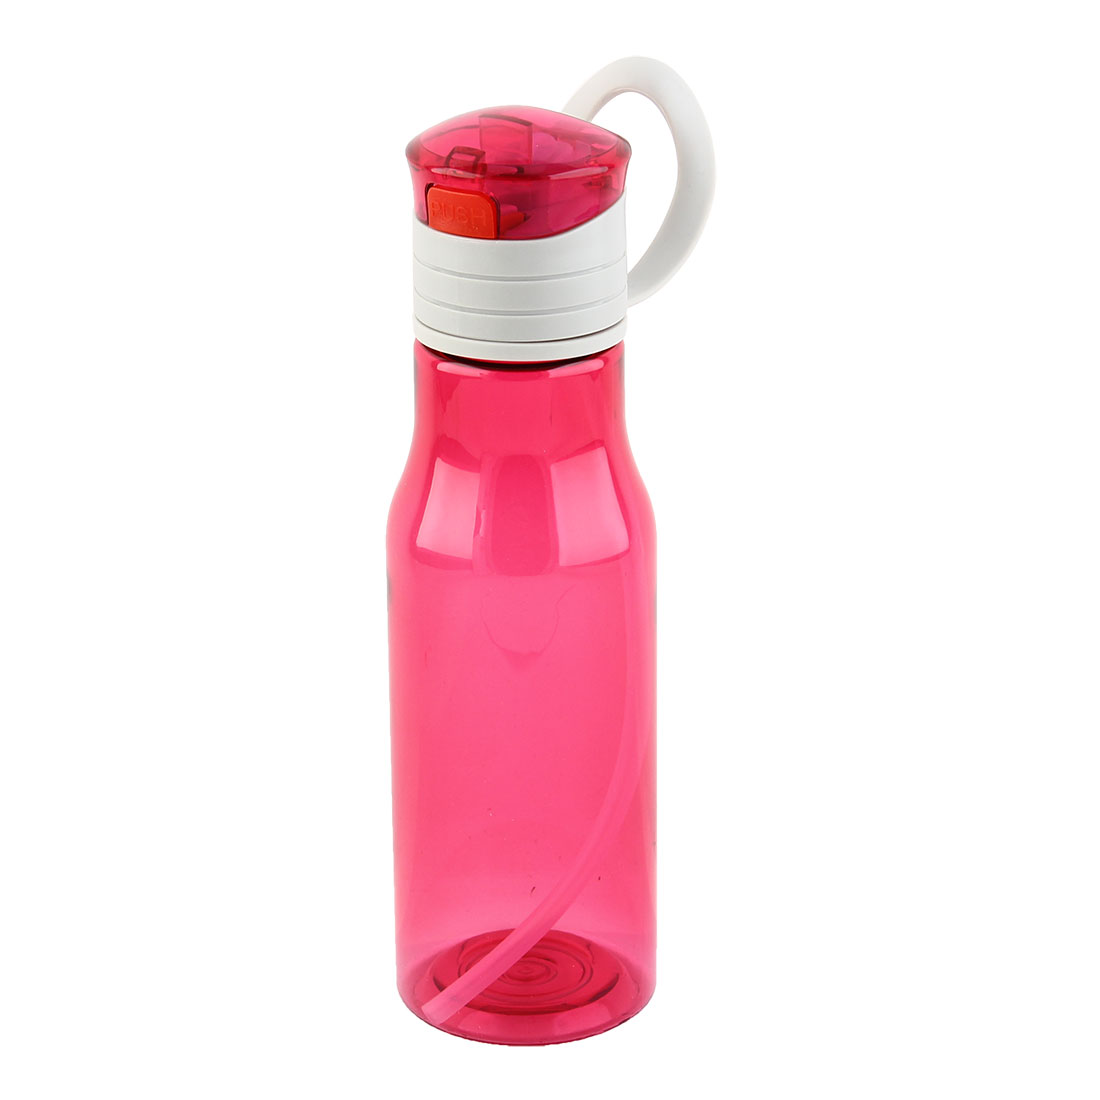 Outdoor Sports Plastic Straw Water Bottle Portable Fruit Juice Mug Cycling Canteen Camping Kettle Fuchsia 410ml